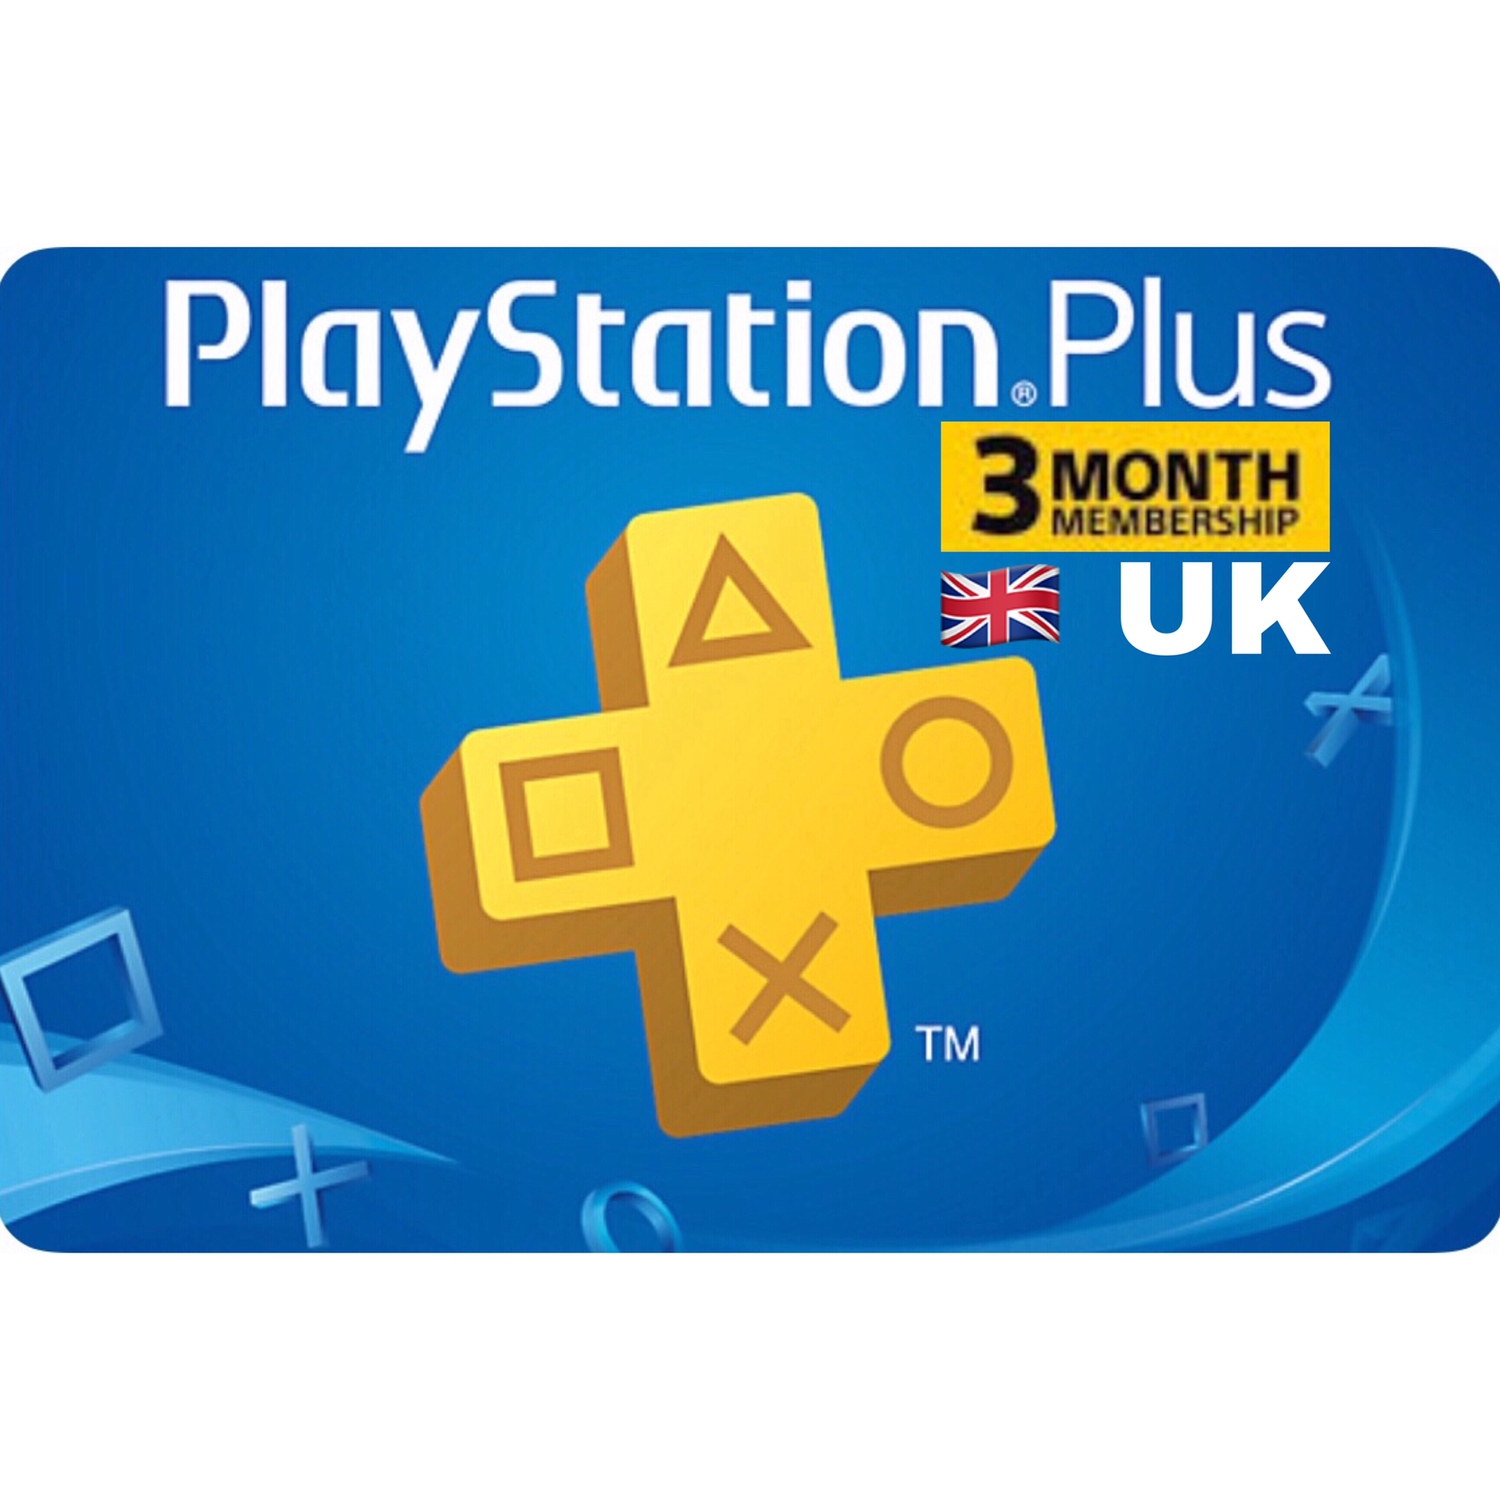 PSN Plus Card - Playstation Plus UK 3 Months Membership